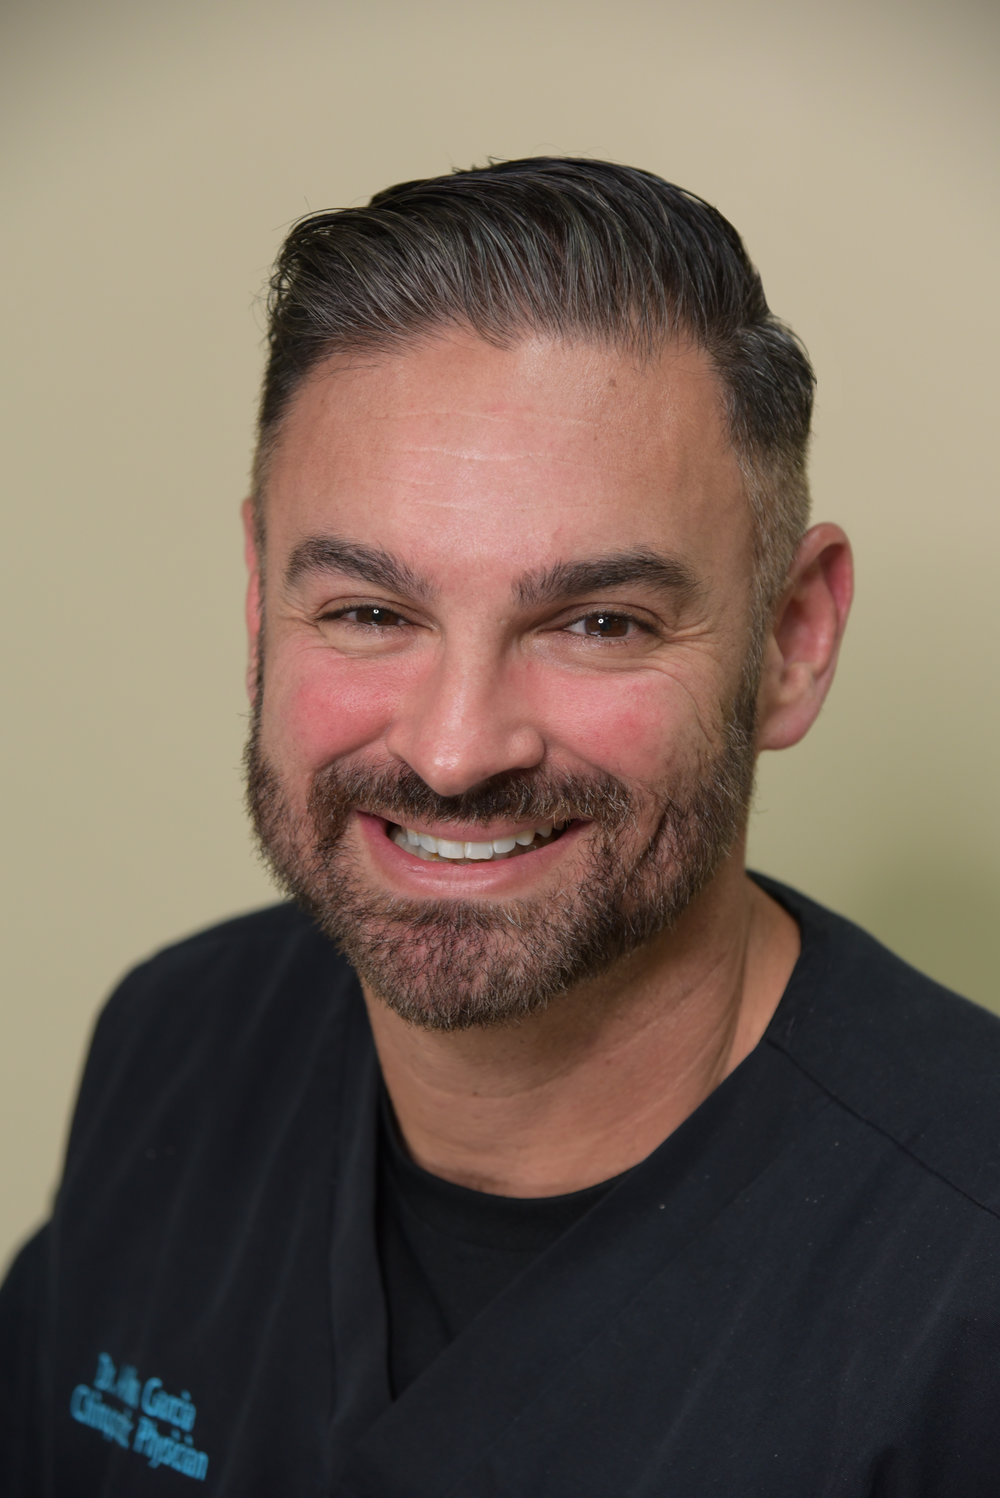 Dr Allen Garcia   Dr. Garcia is originally from Miami, Florida. He received his undergraduate degree from The University of Texas at Austin and his Doctorate in Chiropractic from Texas Chiropractic College. Dr. Garcia has over 18 years of experience helping those injured whether from sports or accidents.